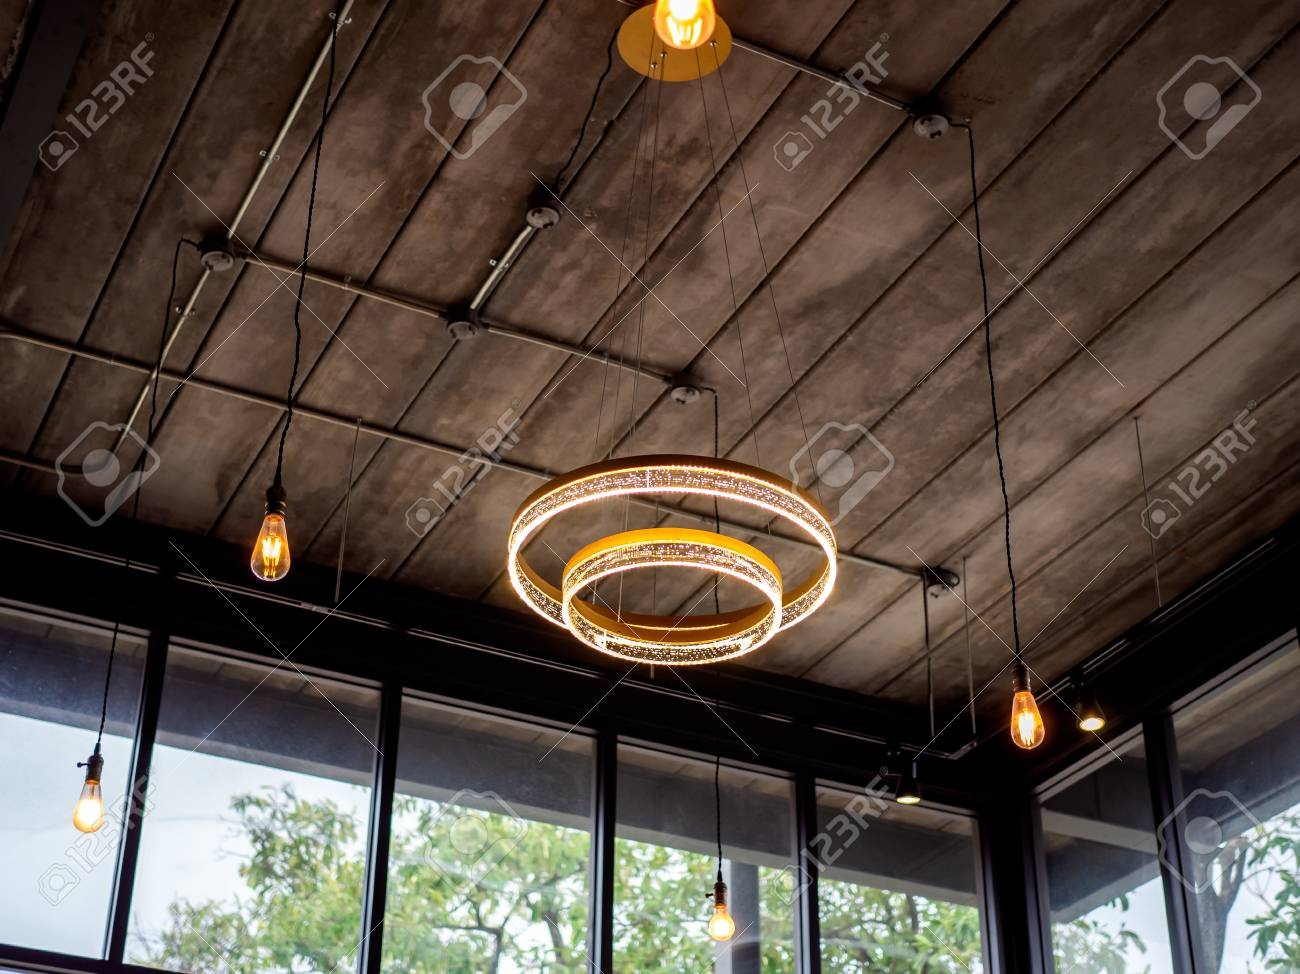 Modern Ceiling Light And Light Bulbs Hanging From Wooden Ceiling Stock Photo Picture And Royalty Free Image Image 126805079